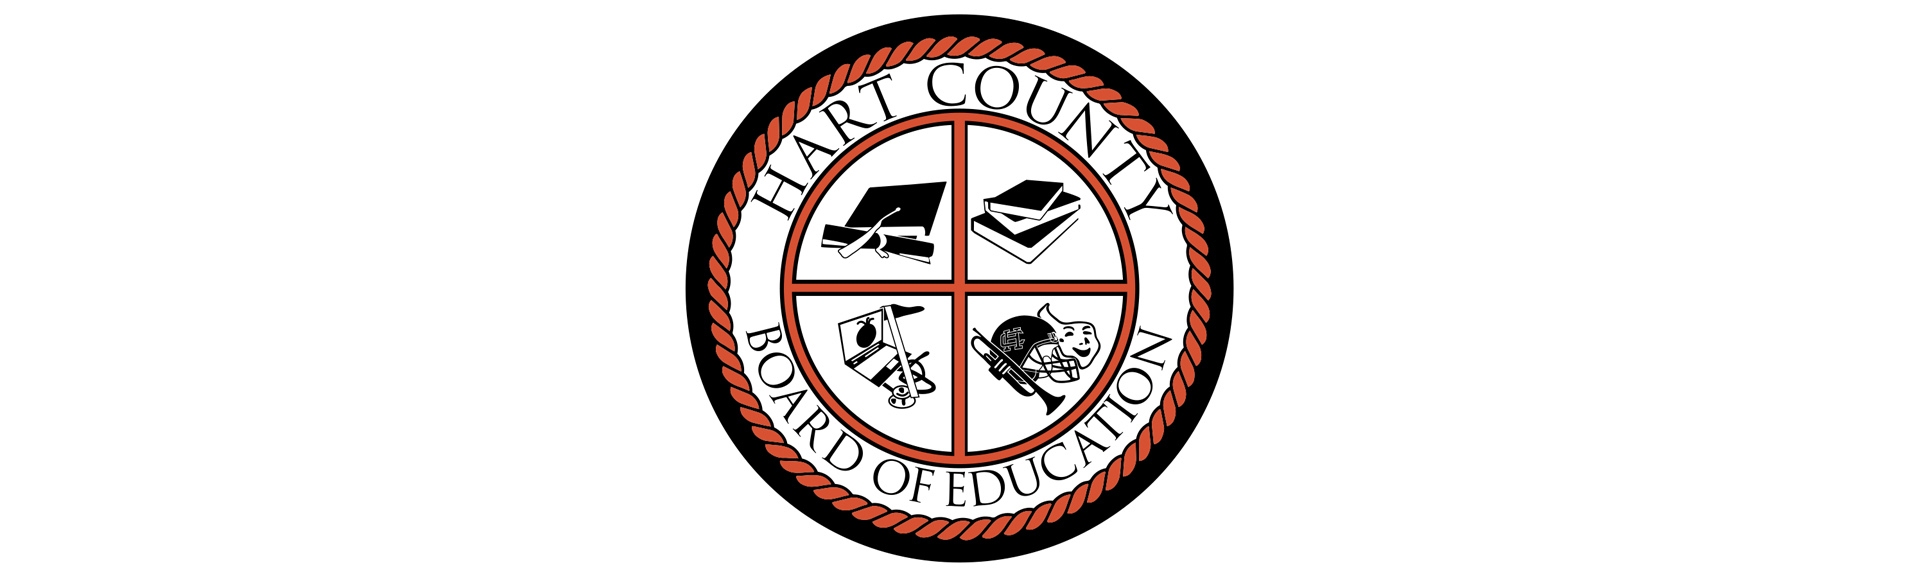 2016-17 Hart County School Information